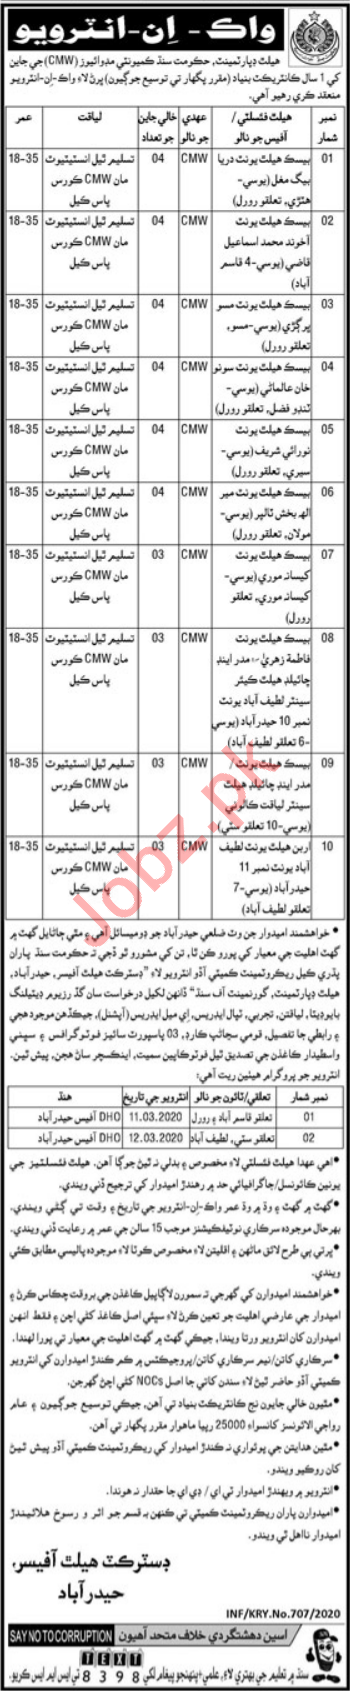 District Health Officer Hyderabad Jobs 2020 For Cmws 2020 Job Advertisement Pakistan